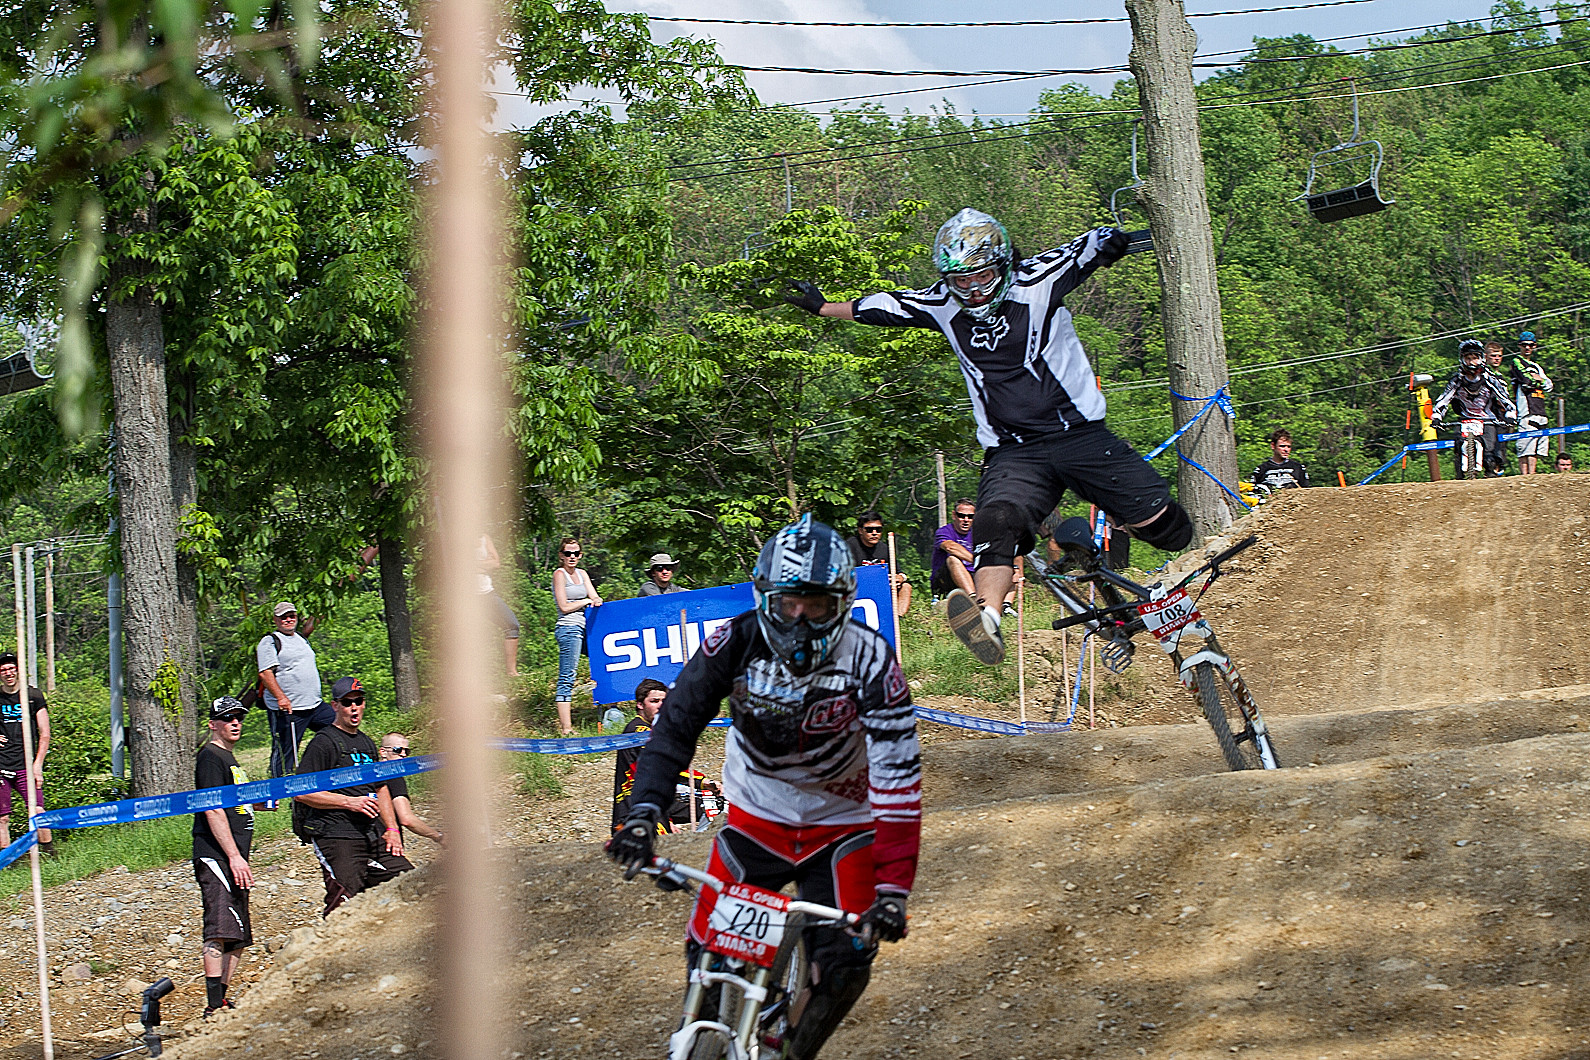 GS Crashes - 2011 US Open Giant Slalom Qualifications - Mountain Biking Pictures - Vital MTB